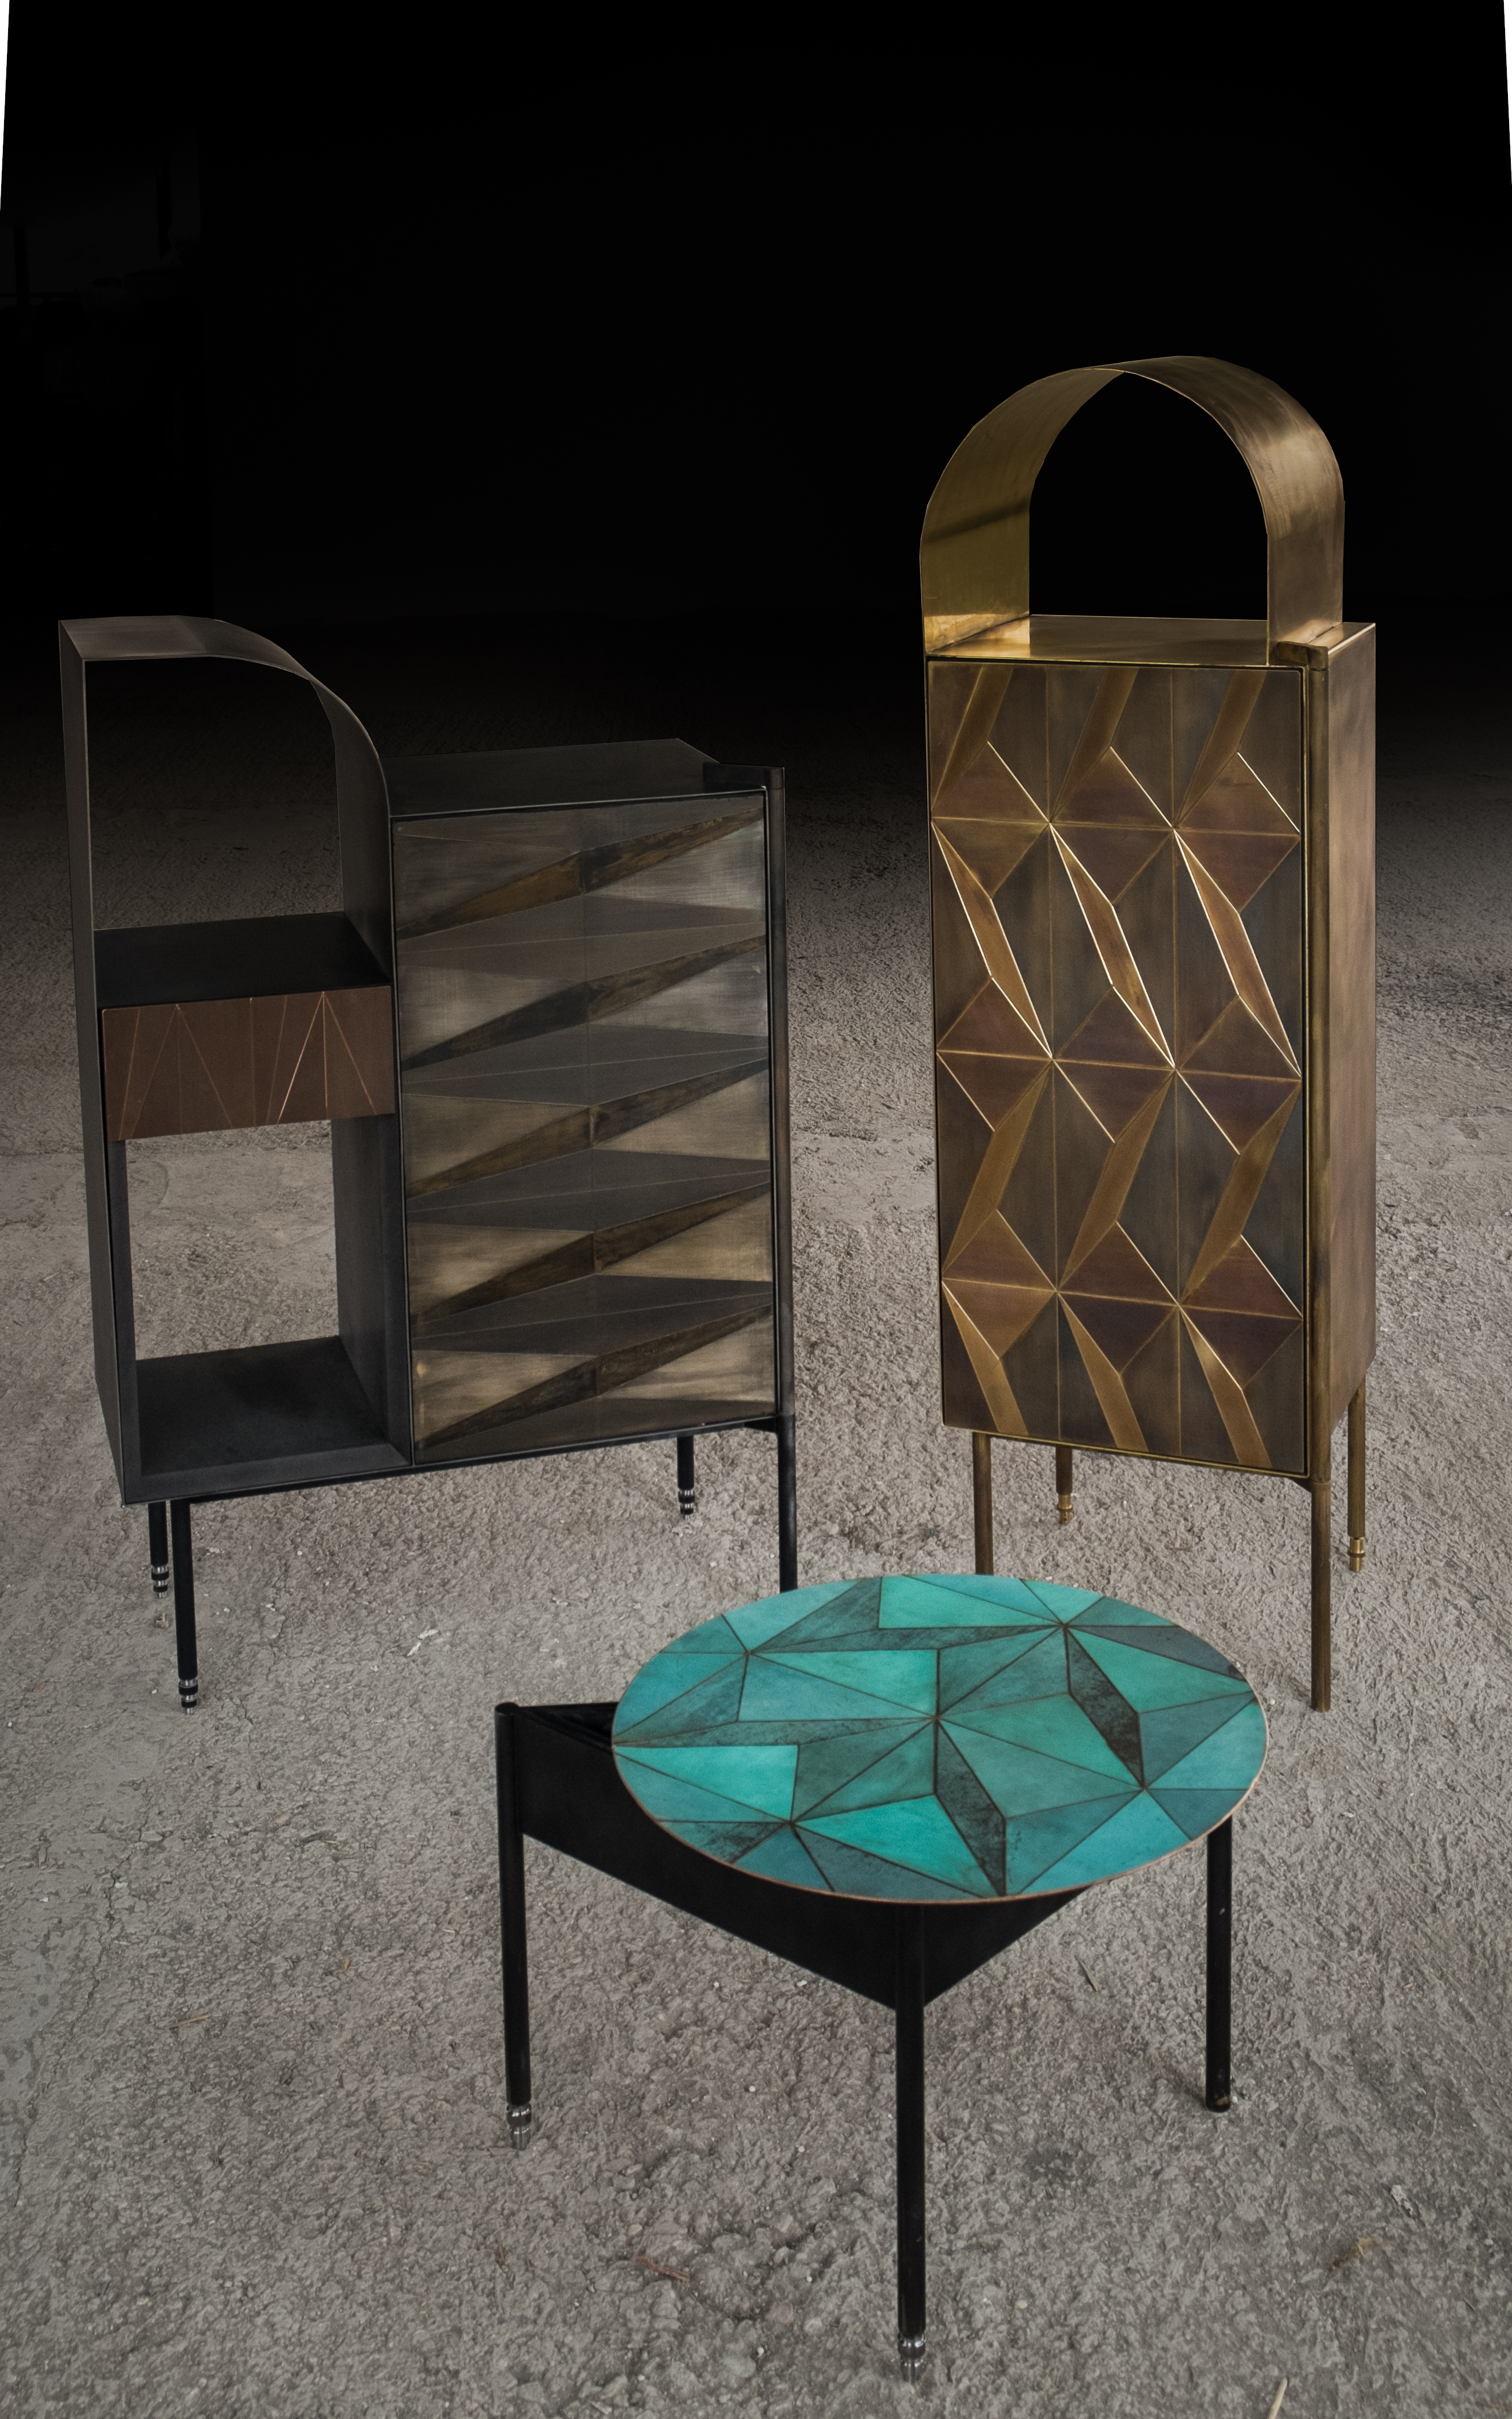 Marque' Coffee Table - <p>The collection by Alessandro Zambelli comprises a series of storage furniture that include a small cabinet, a dry bar, a console and a coffee table, where the metal inlays remind of those traditionally found in Art Deco wooden furniture, adding a new element of character and prestige. The linear essentiality of the forms, which is reflected in each element of the collection, is enriched by the presence of precious superficial decors that are juxtaposed through inlays: small metal oxidised plates animate the surface of each storage element with their refined alternation of delicate geometrical motifs. The oxidation process brings a unique mutation of the surface itself, enriched by a whole variety of shades and gradation.<br /> Developed and Produced during the Matter of Stuff Designer Residency program in Montalcino</p>  | Matter of Stuff